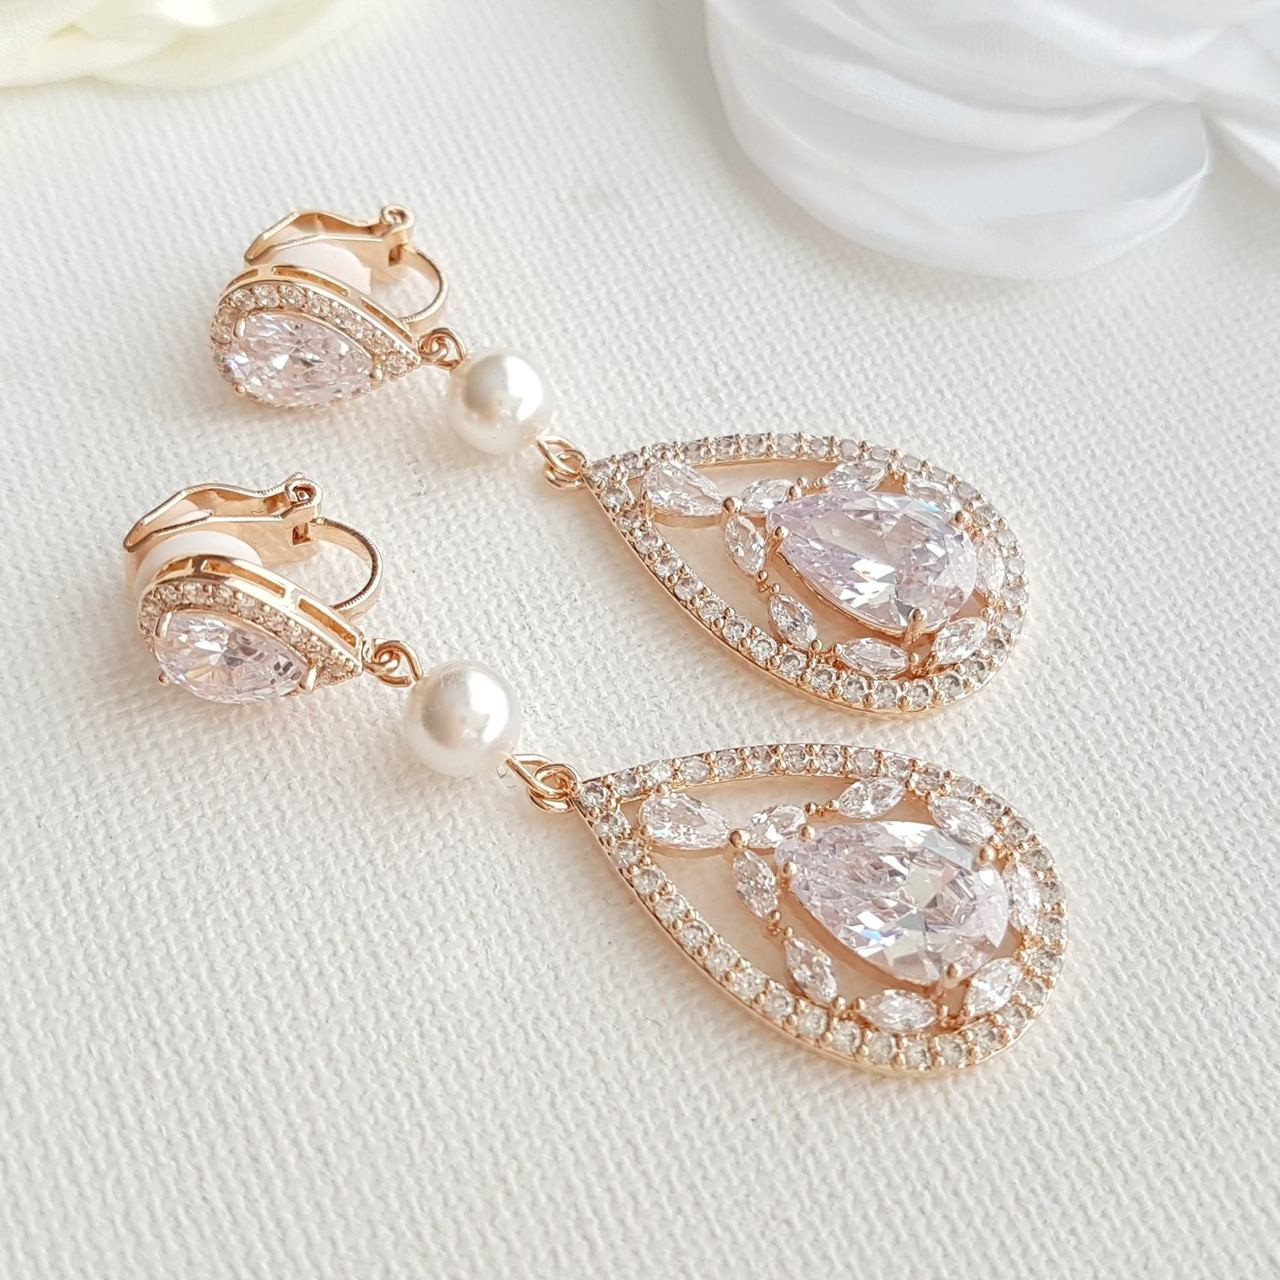 Rose Gold Bridal Earrings Clip On Wedding Jewelry Long Pearl Crystal